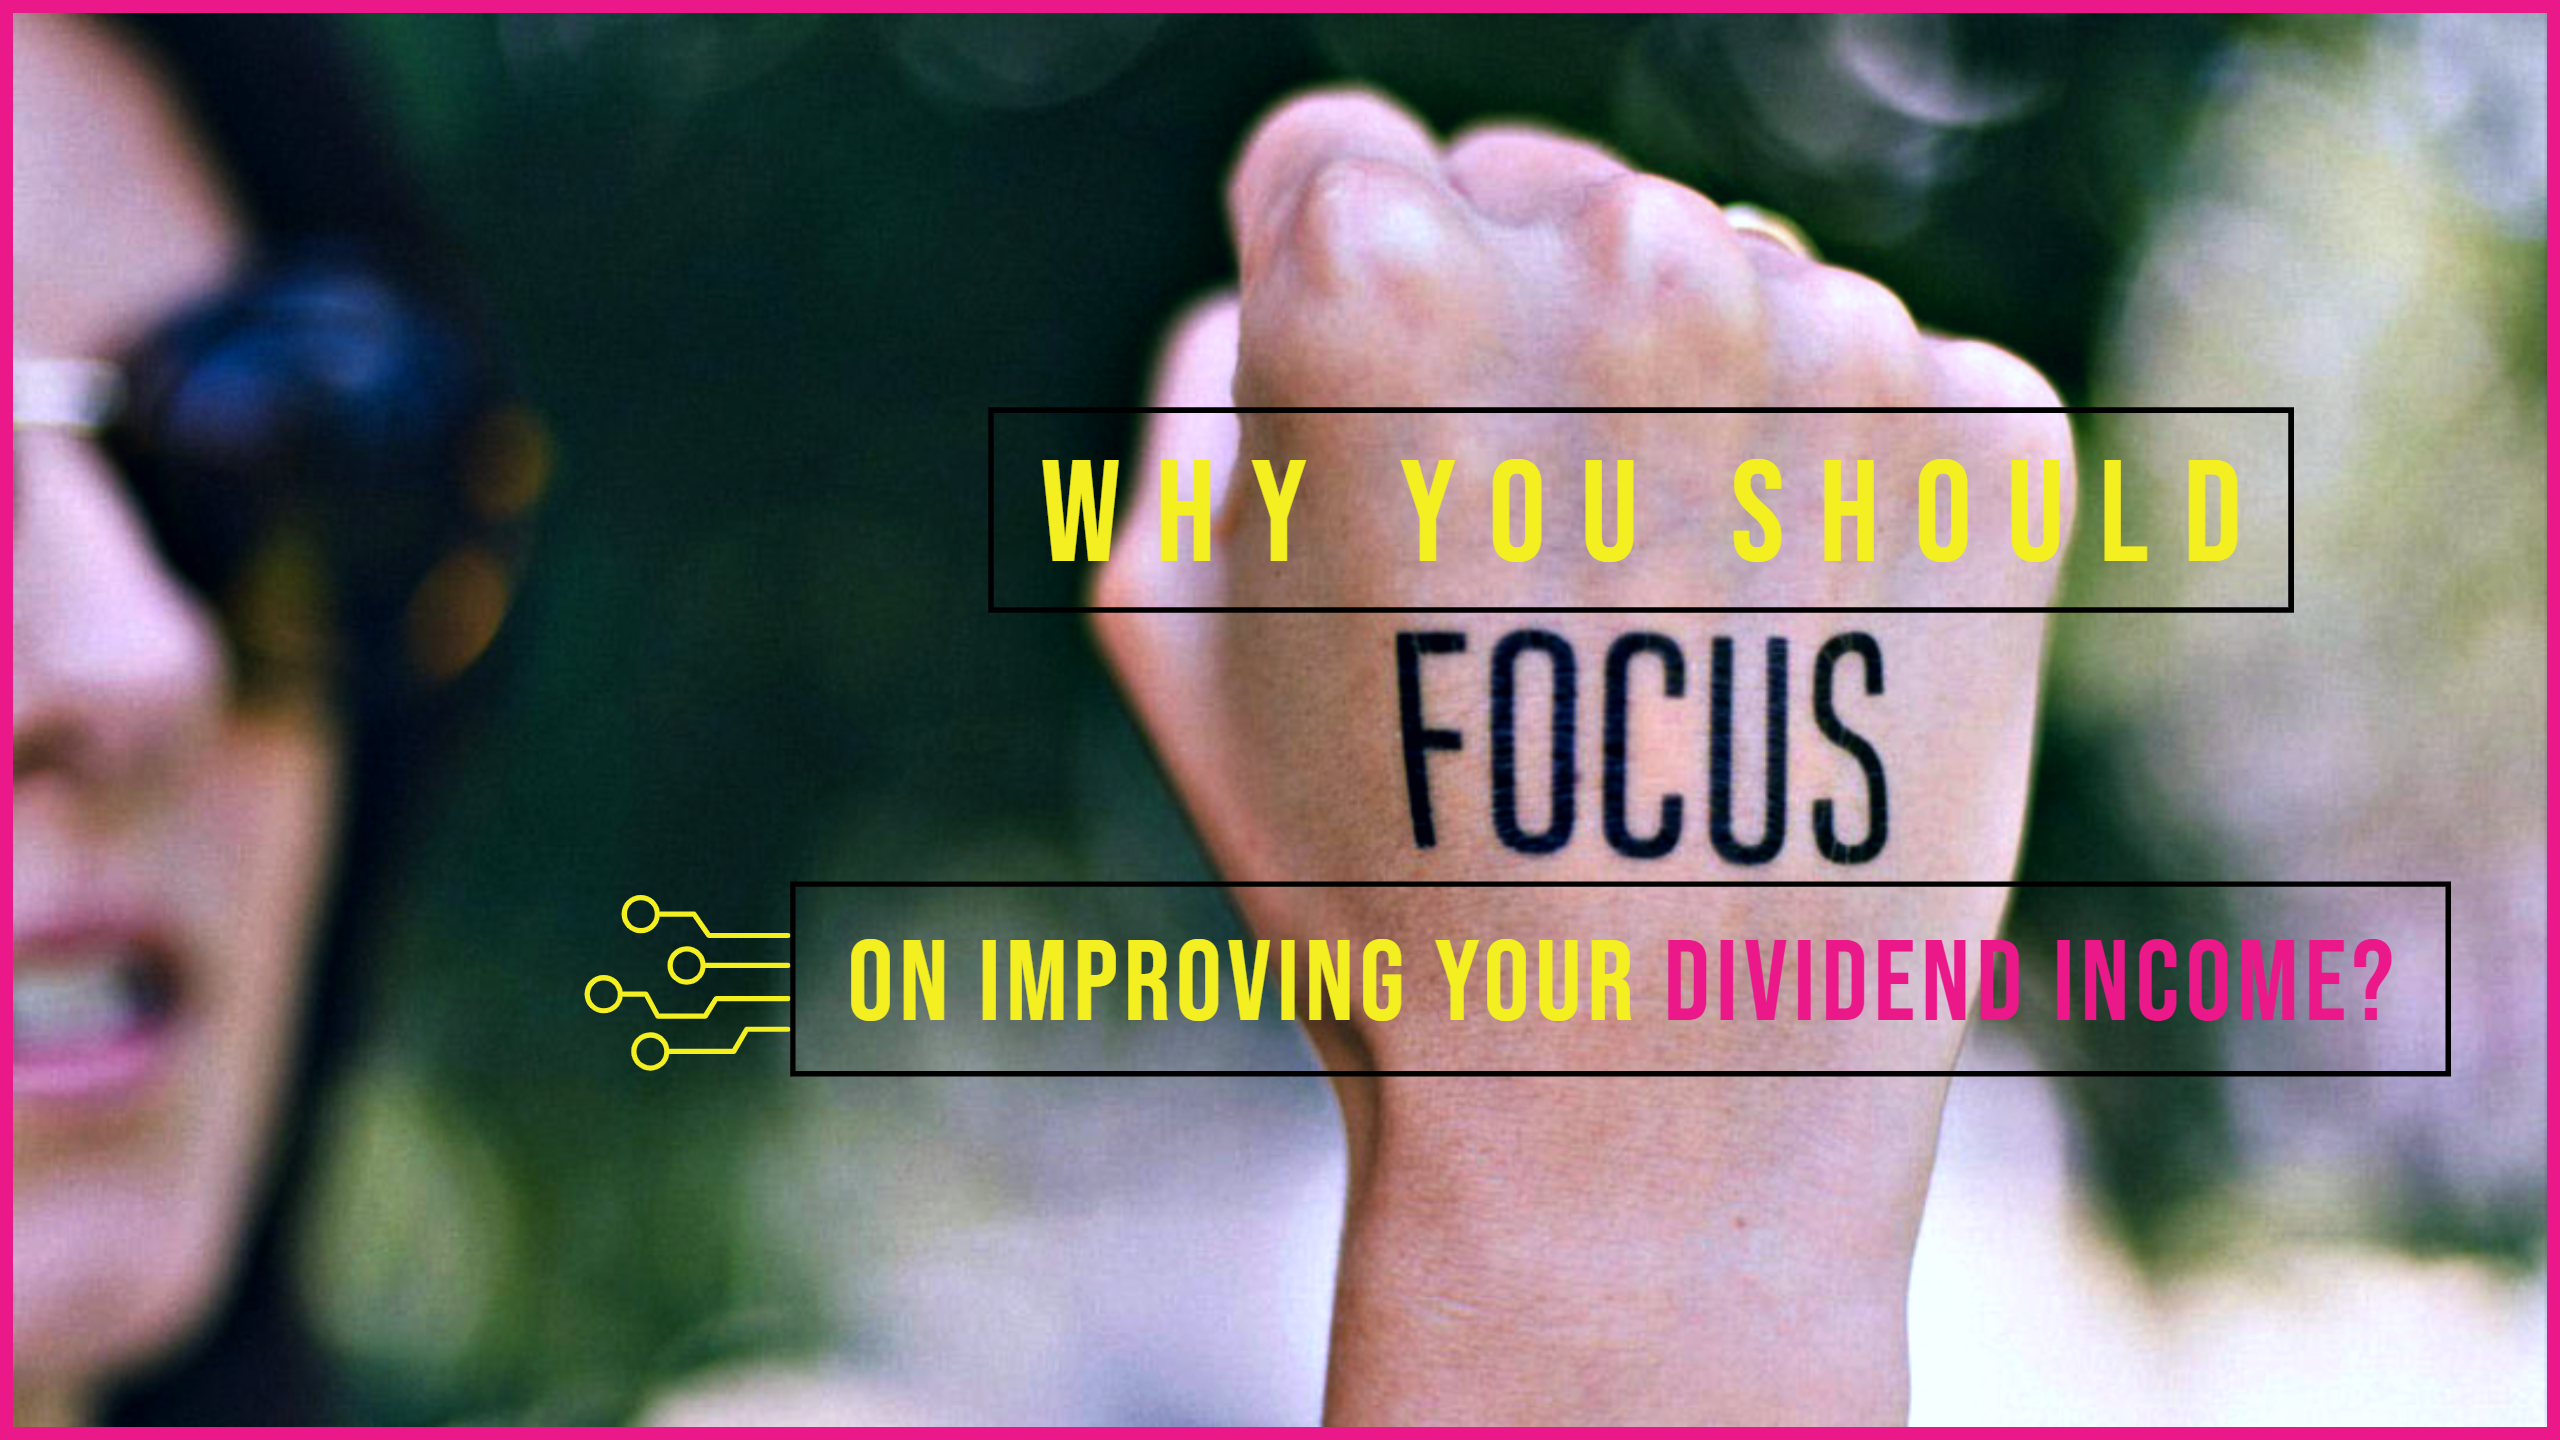 Why You Should Focus On Improving Your Dividend Income?